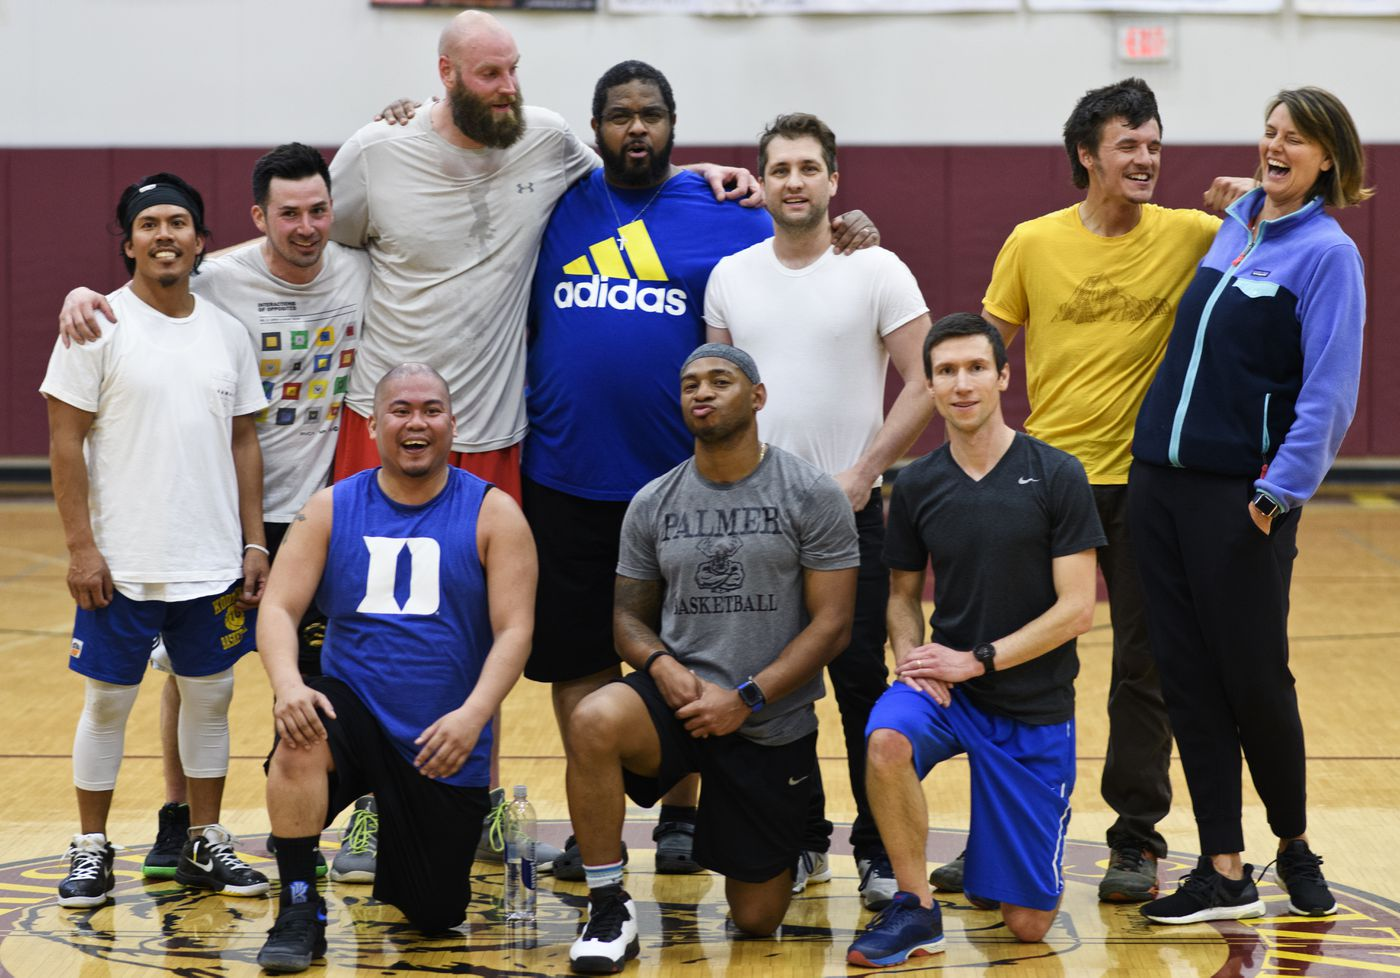 Players and coaches of the 2001 Kodiak High School boys varsity basketball team gathered for a pickup basketball game in Anchorage on April 25, 2019. Their high school state championship game was inducted into the Alaska Sports Hall of Fame this year. (Marc Lester / ADN)